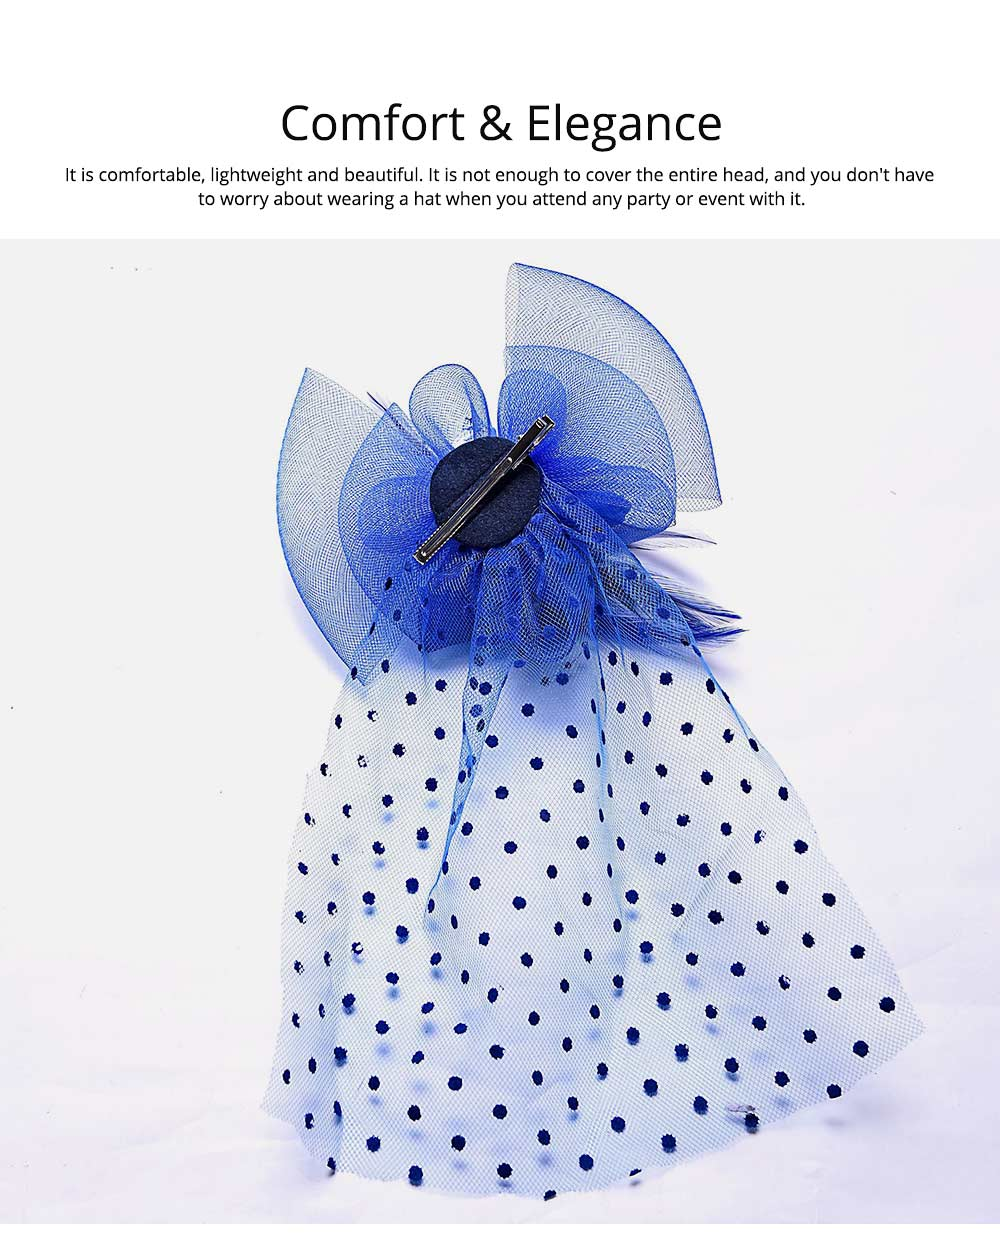 Mesh Headwear for Shows Dinner Banquet, Brides Hat Feather Mesh Yarn Hair Accessories with Flaky Polka Dots Lace 1